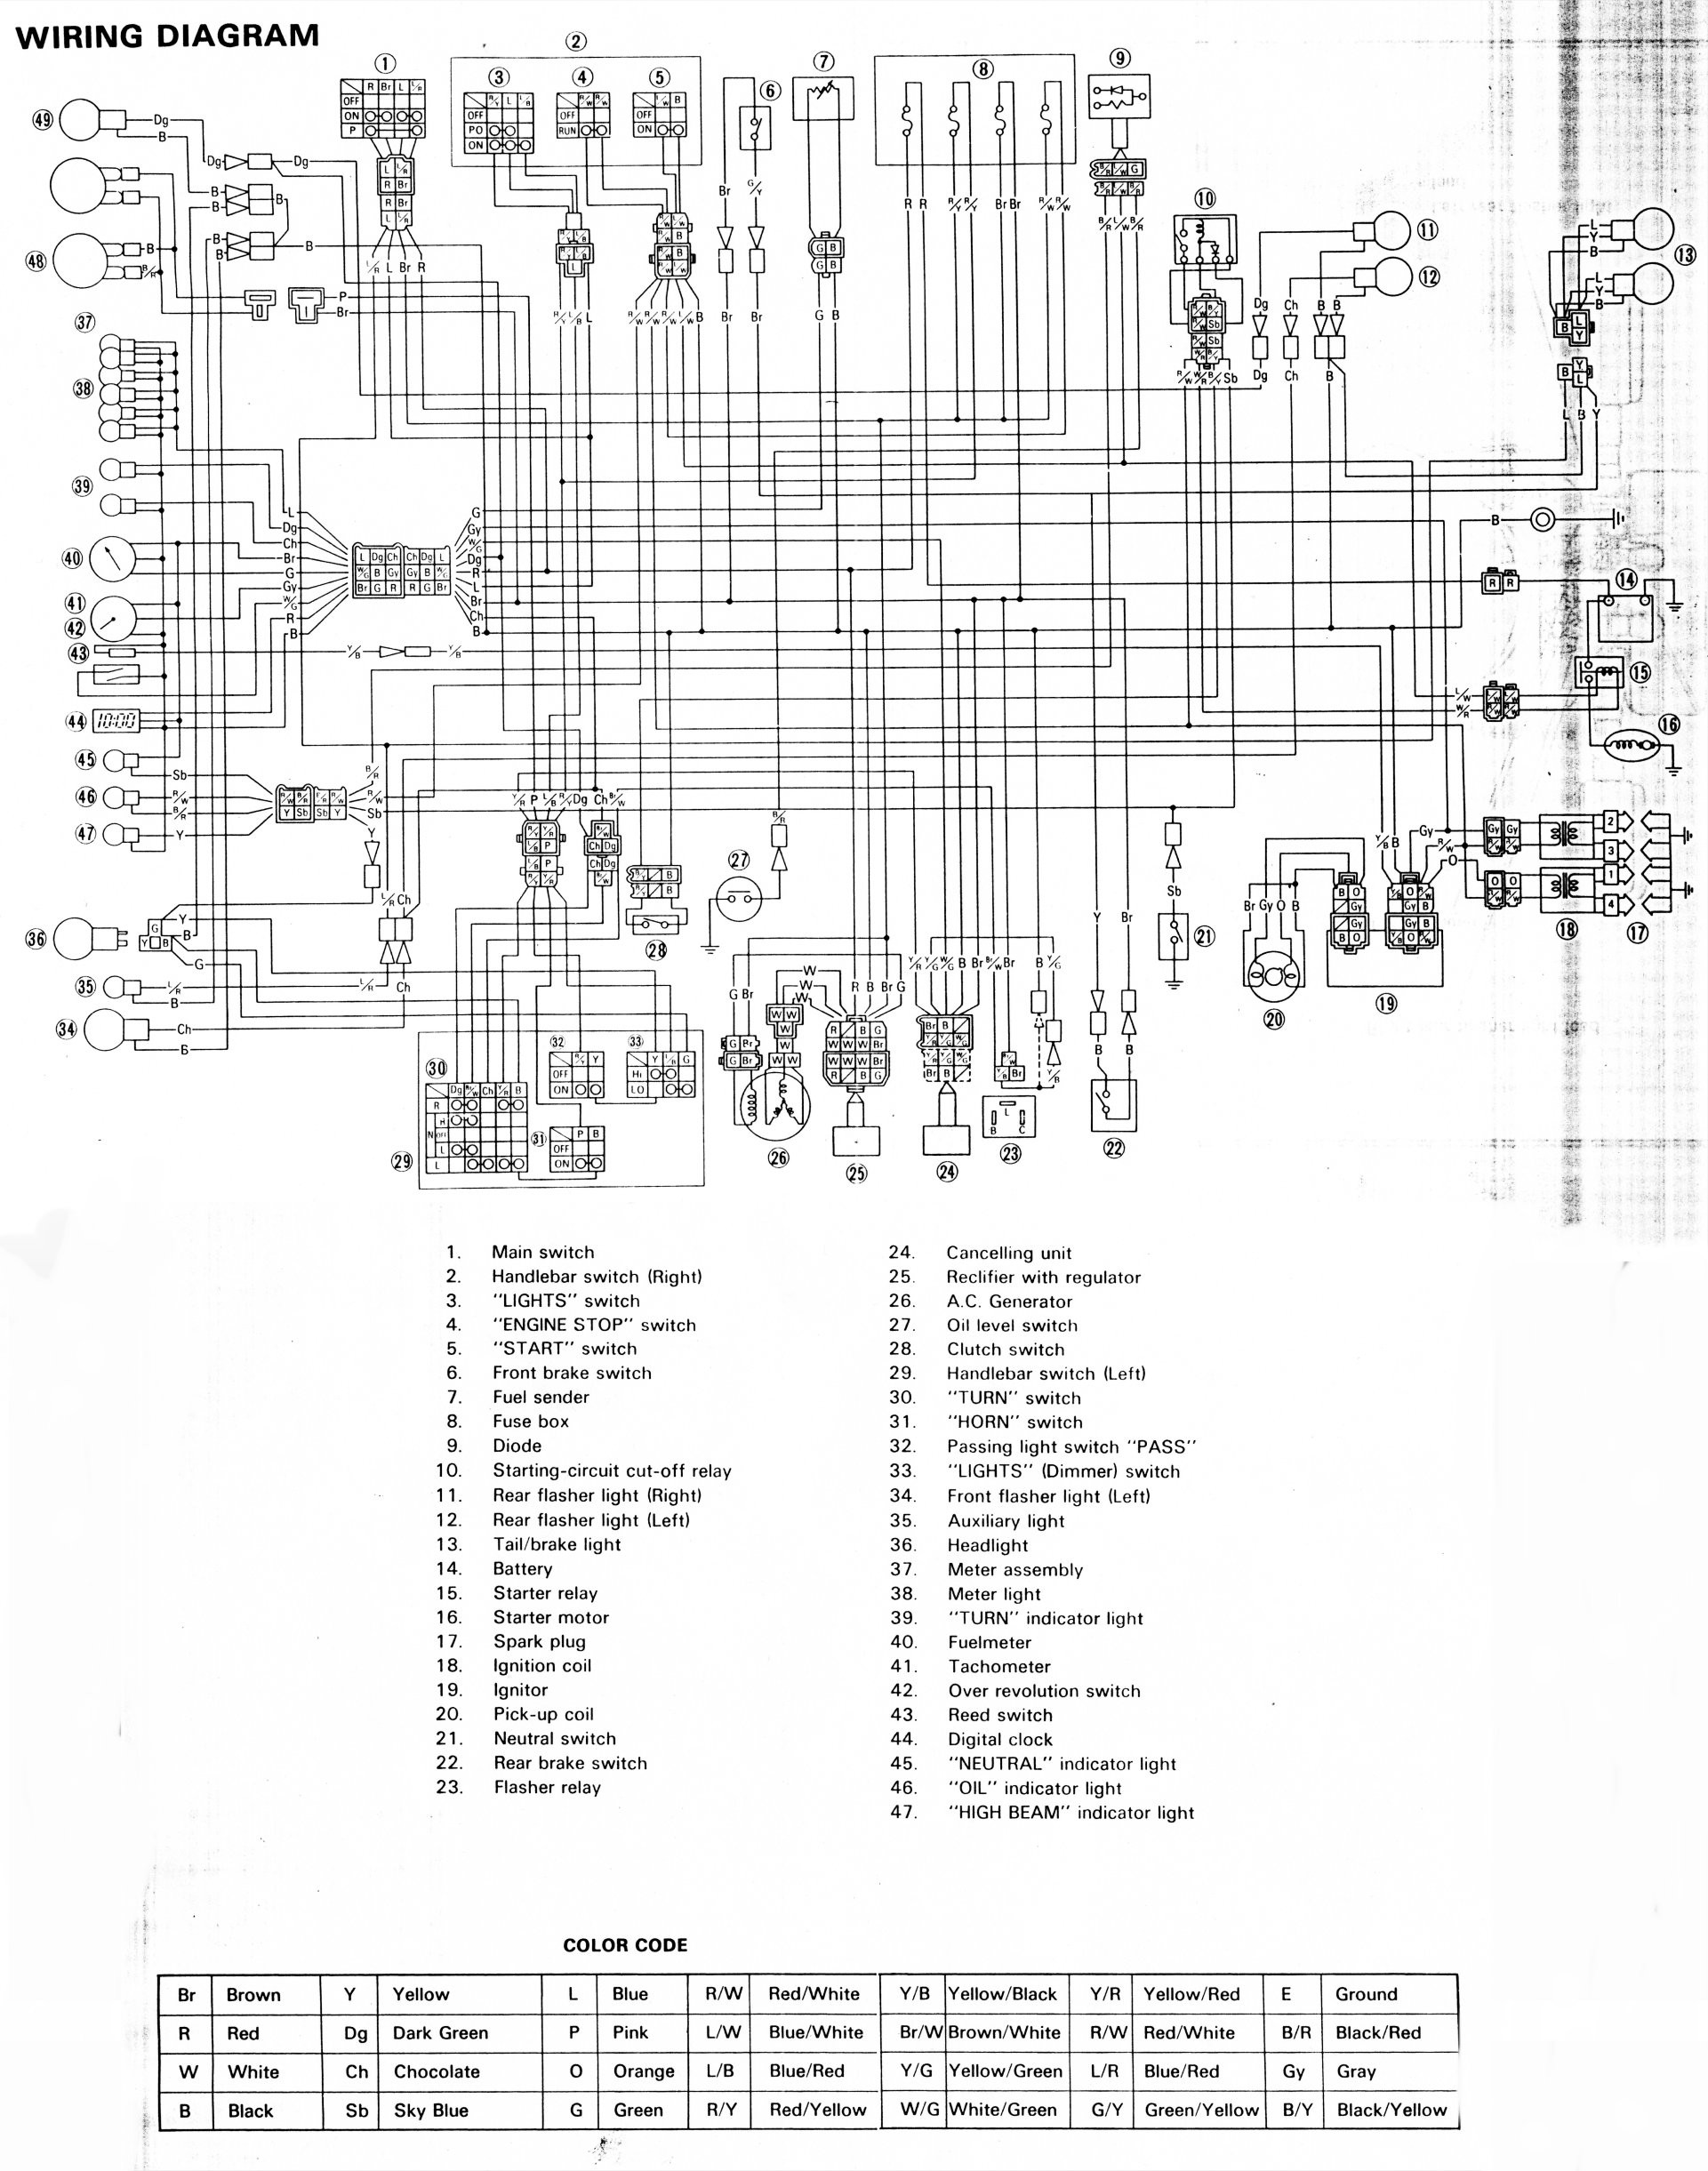 1983 Honda Shadow 750 Wiring Diagram Opinions About 2009 Gl1800 Page 3 And Schematics Rh Rivcas Org 2000 Vt700